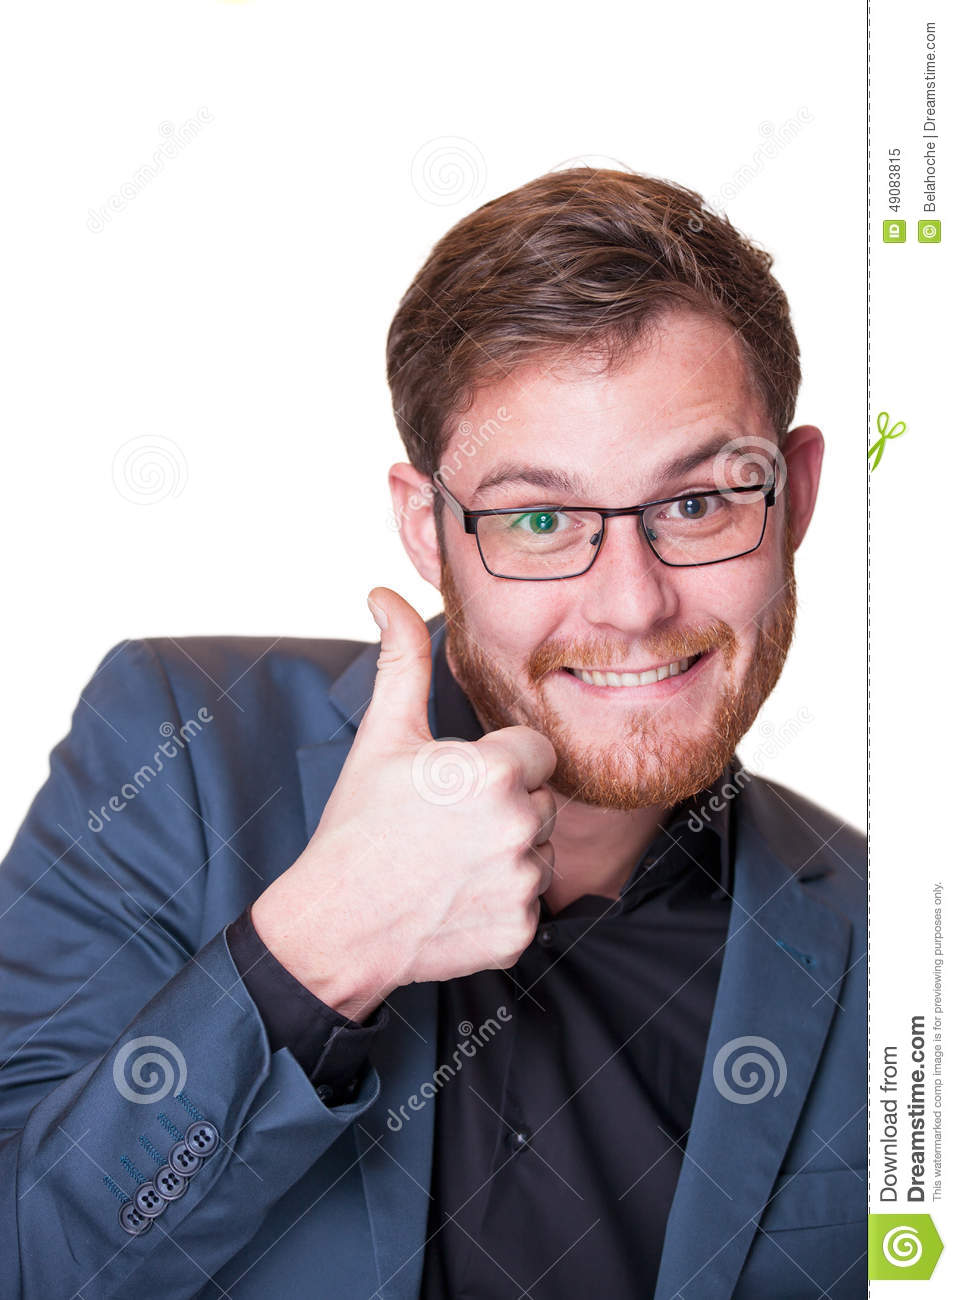 Enthusiastic Man Giving A Thumbs Up Gesture Stock Image